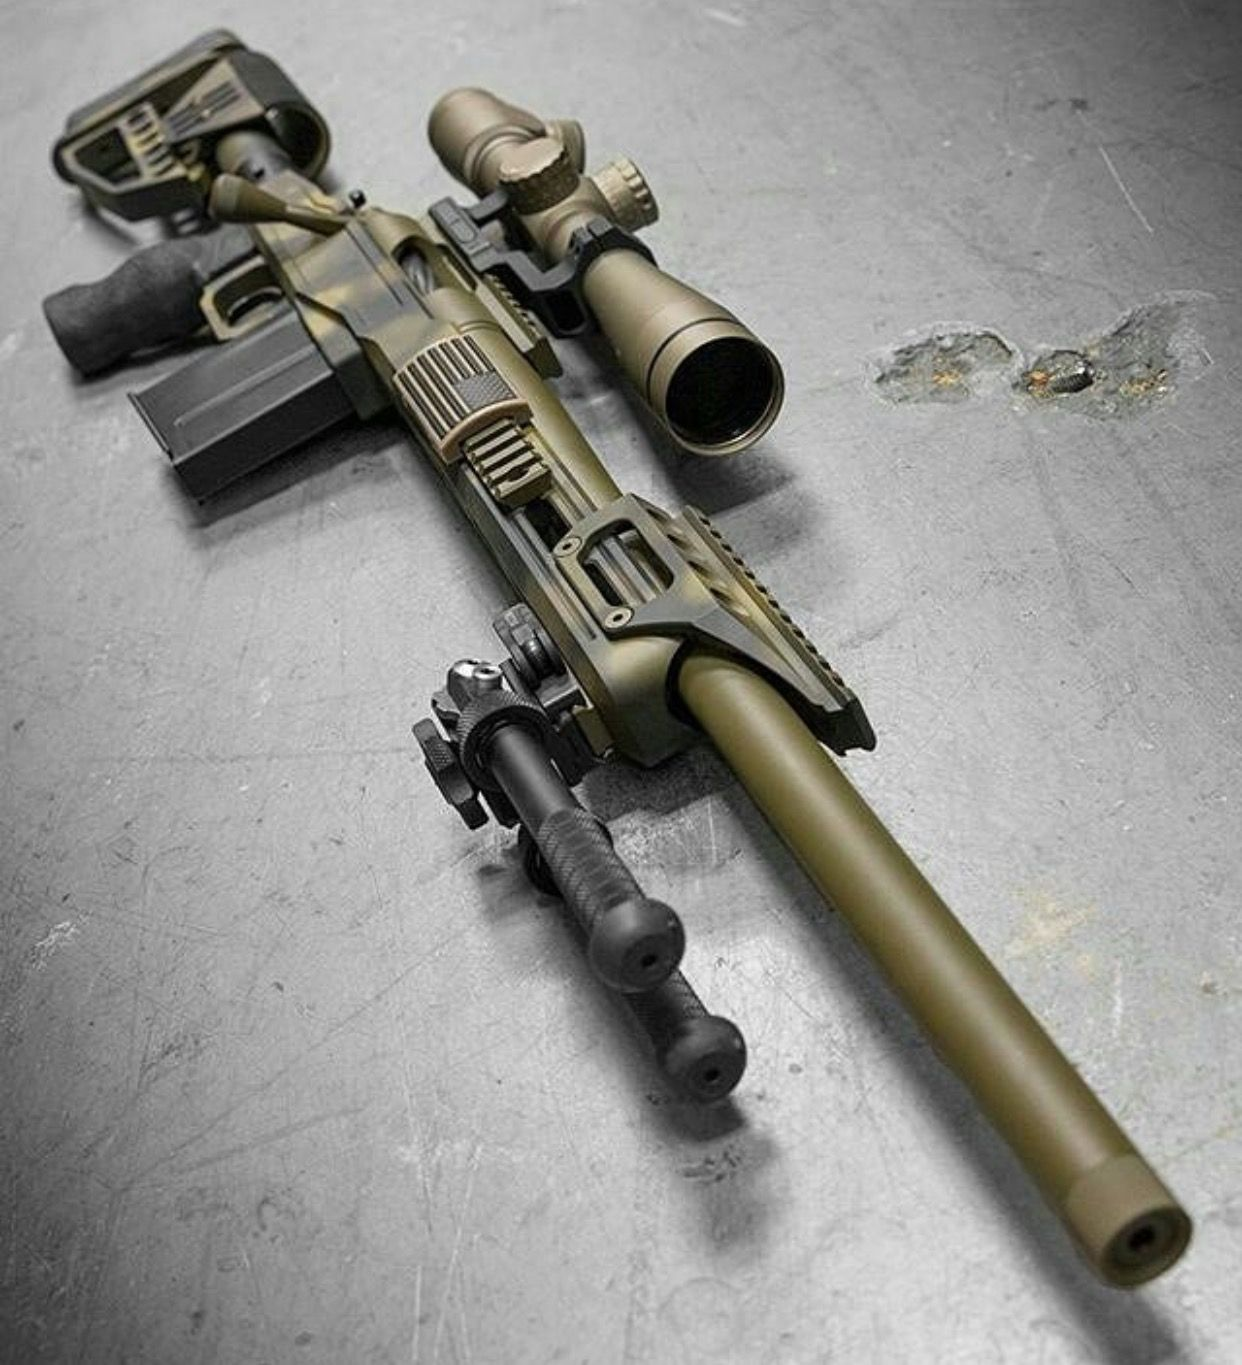 Accurate Ordinance CTX | Guns | Pinterest | Guns, Weapons ...